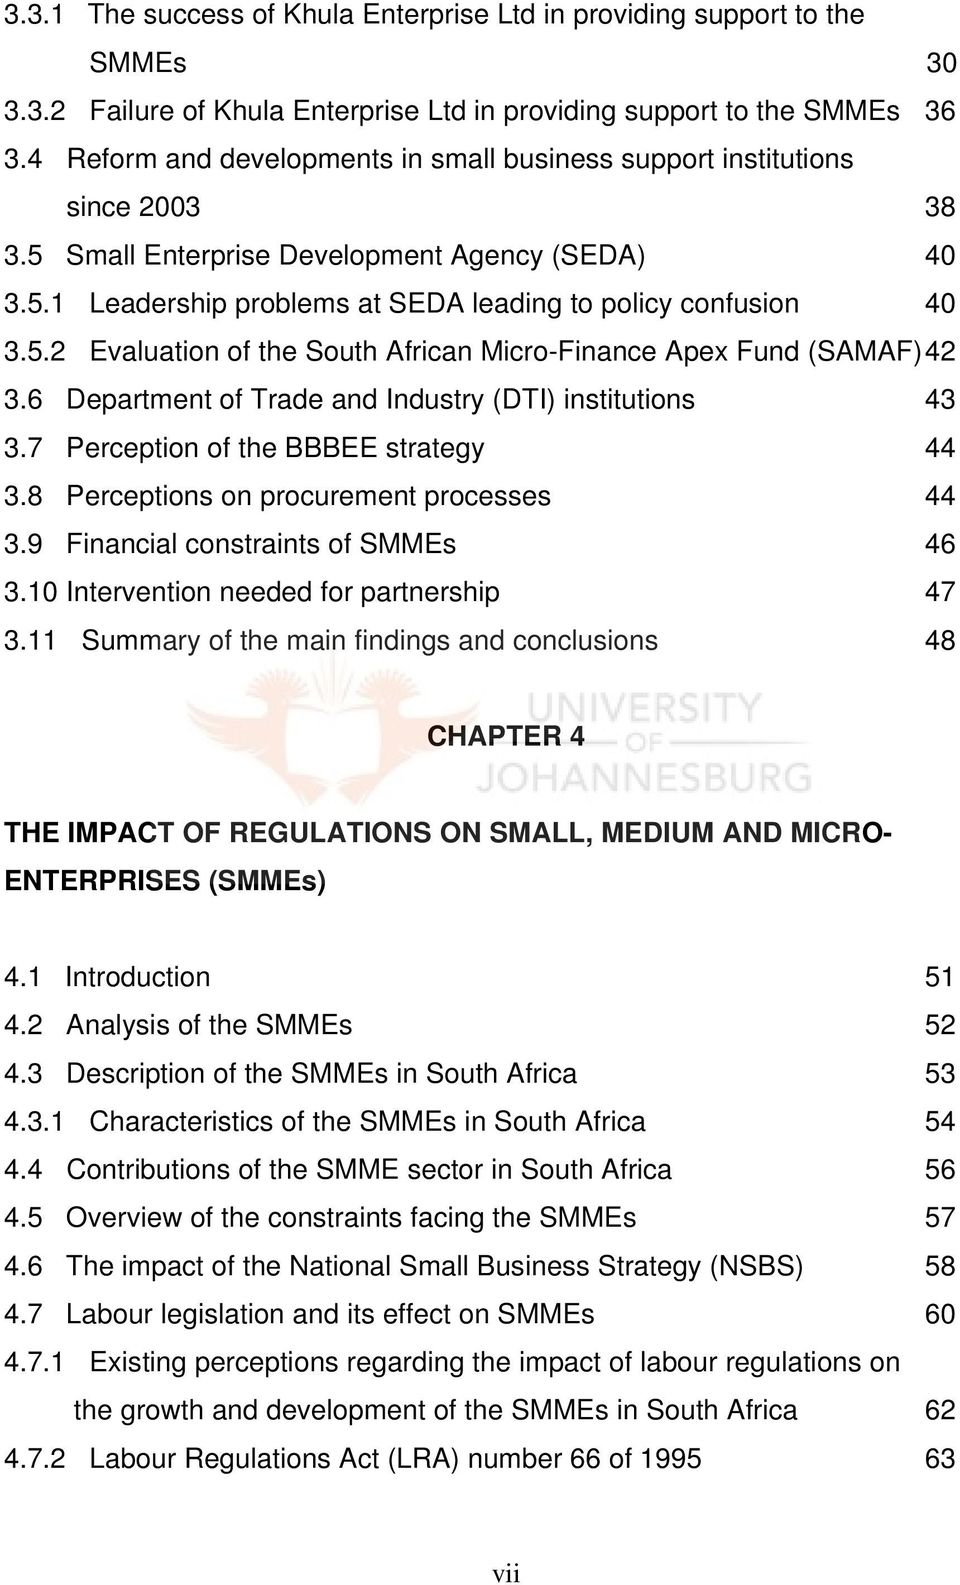 6 Department of Trade and Industry (DTI) institutions 43 3.7 Perception of the BBBEE strategy 44 3.8 Perceptions on procurement processes 44 3.9 Financial constraints of SMMEs 46 3.